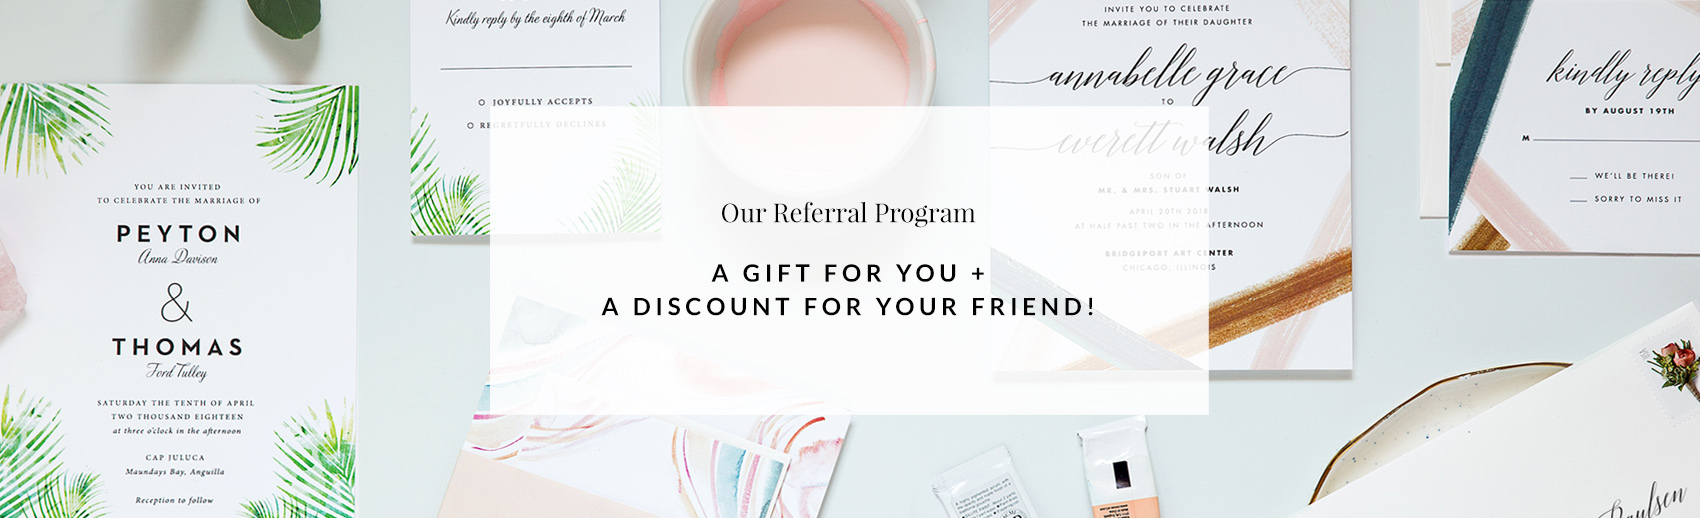 Wedding Invitations, Modern, Simple, Elegant, by Fine Day Press Austin Texas - Referral Program